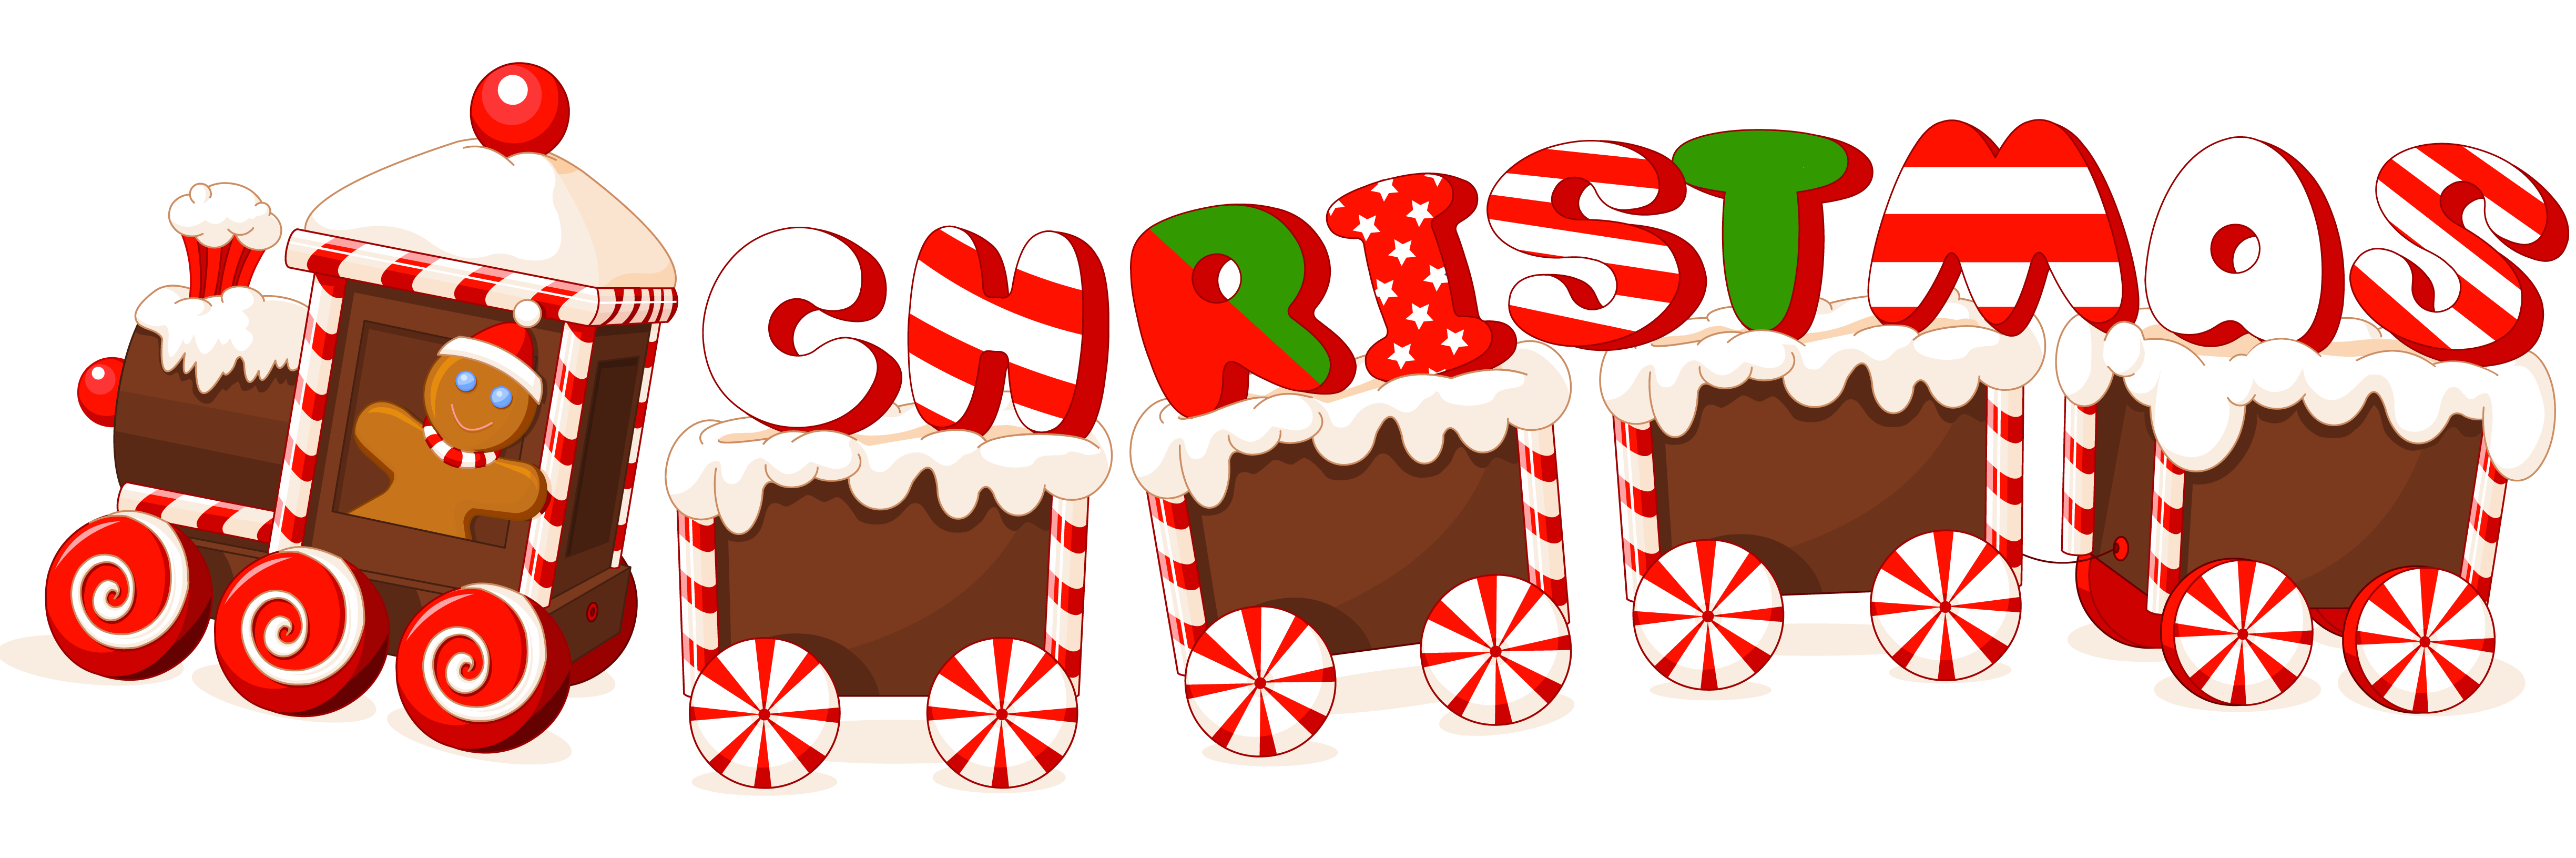 clipart christmas wishes - photo #9